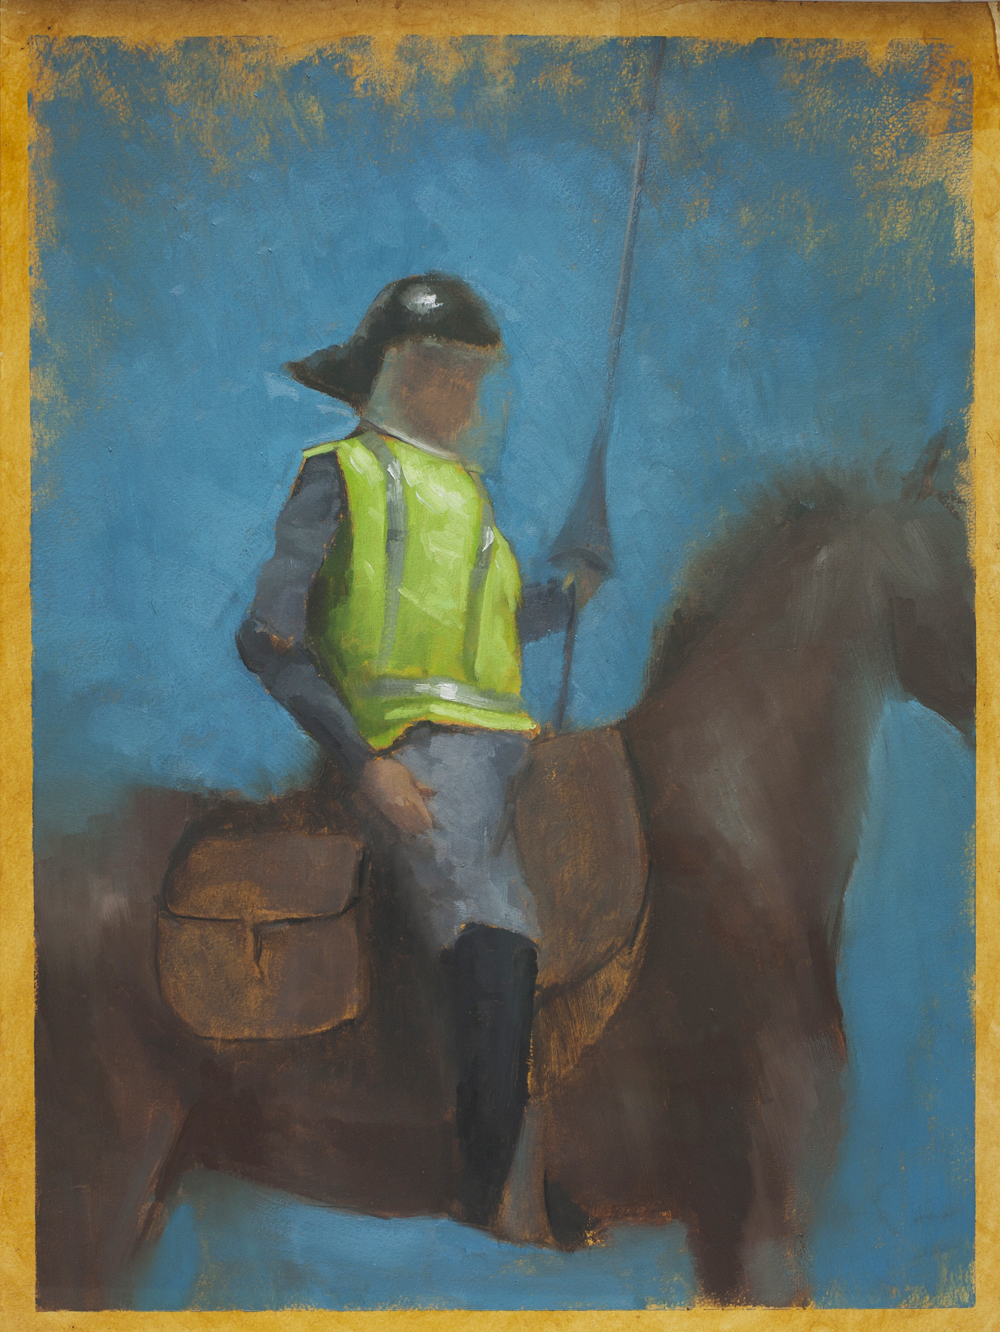 St. George NEON, Oil on Paper, 56x42cm,